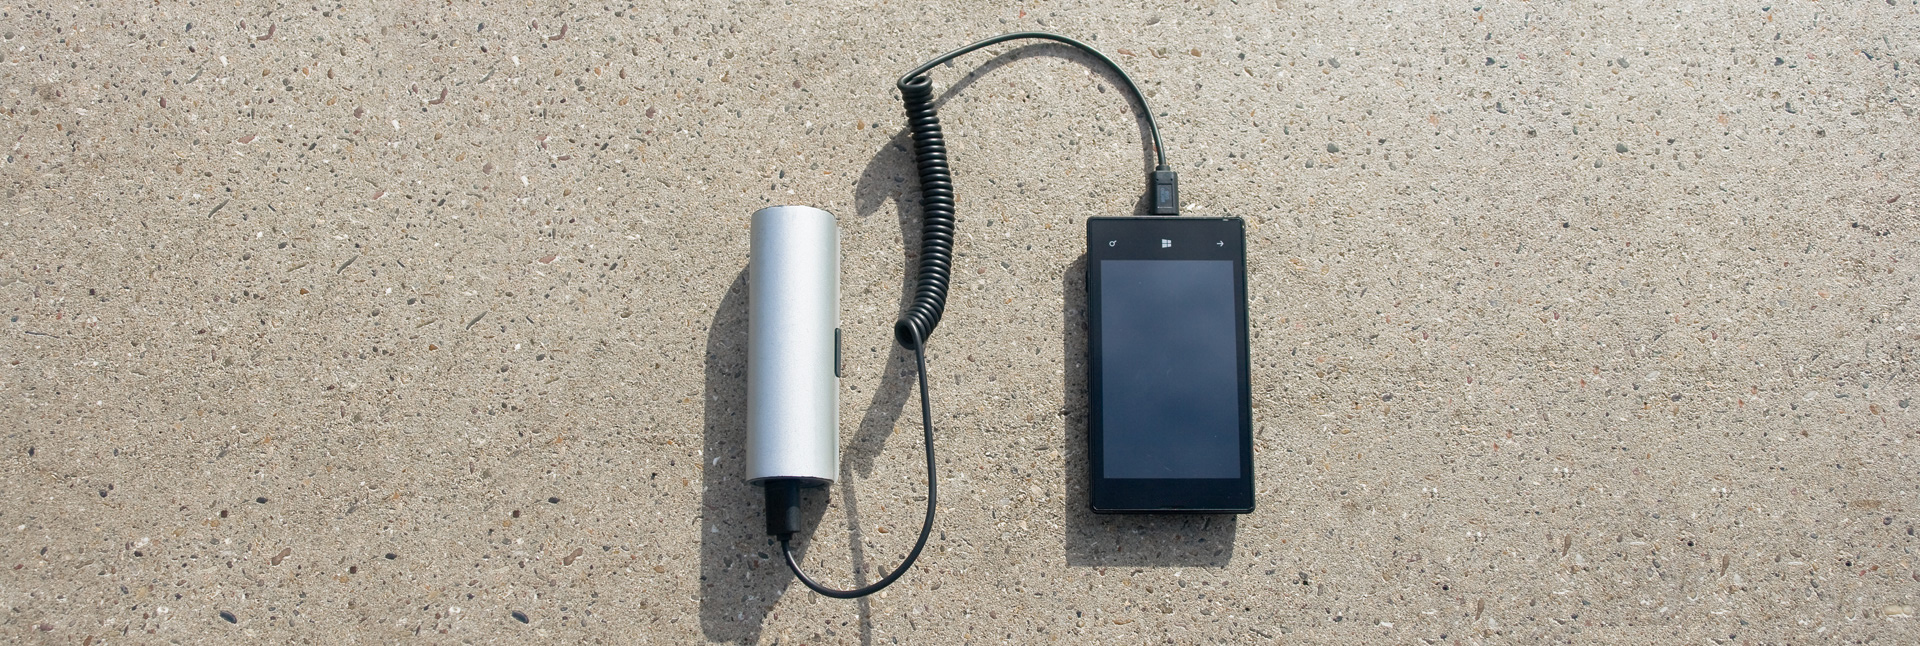 WAACS-ROLLABLE-SOLAR-CHARGER-SLIDER-4a